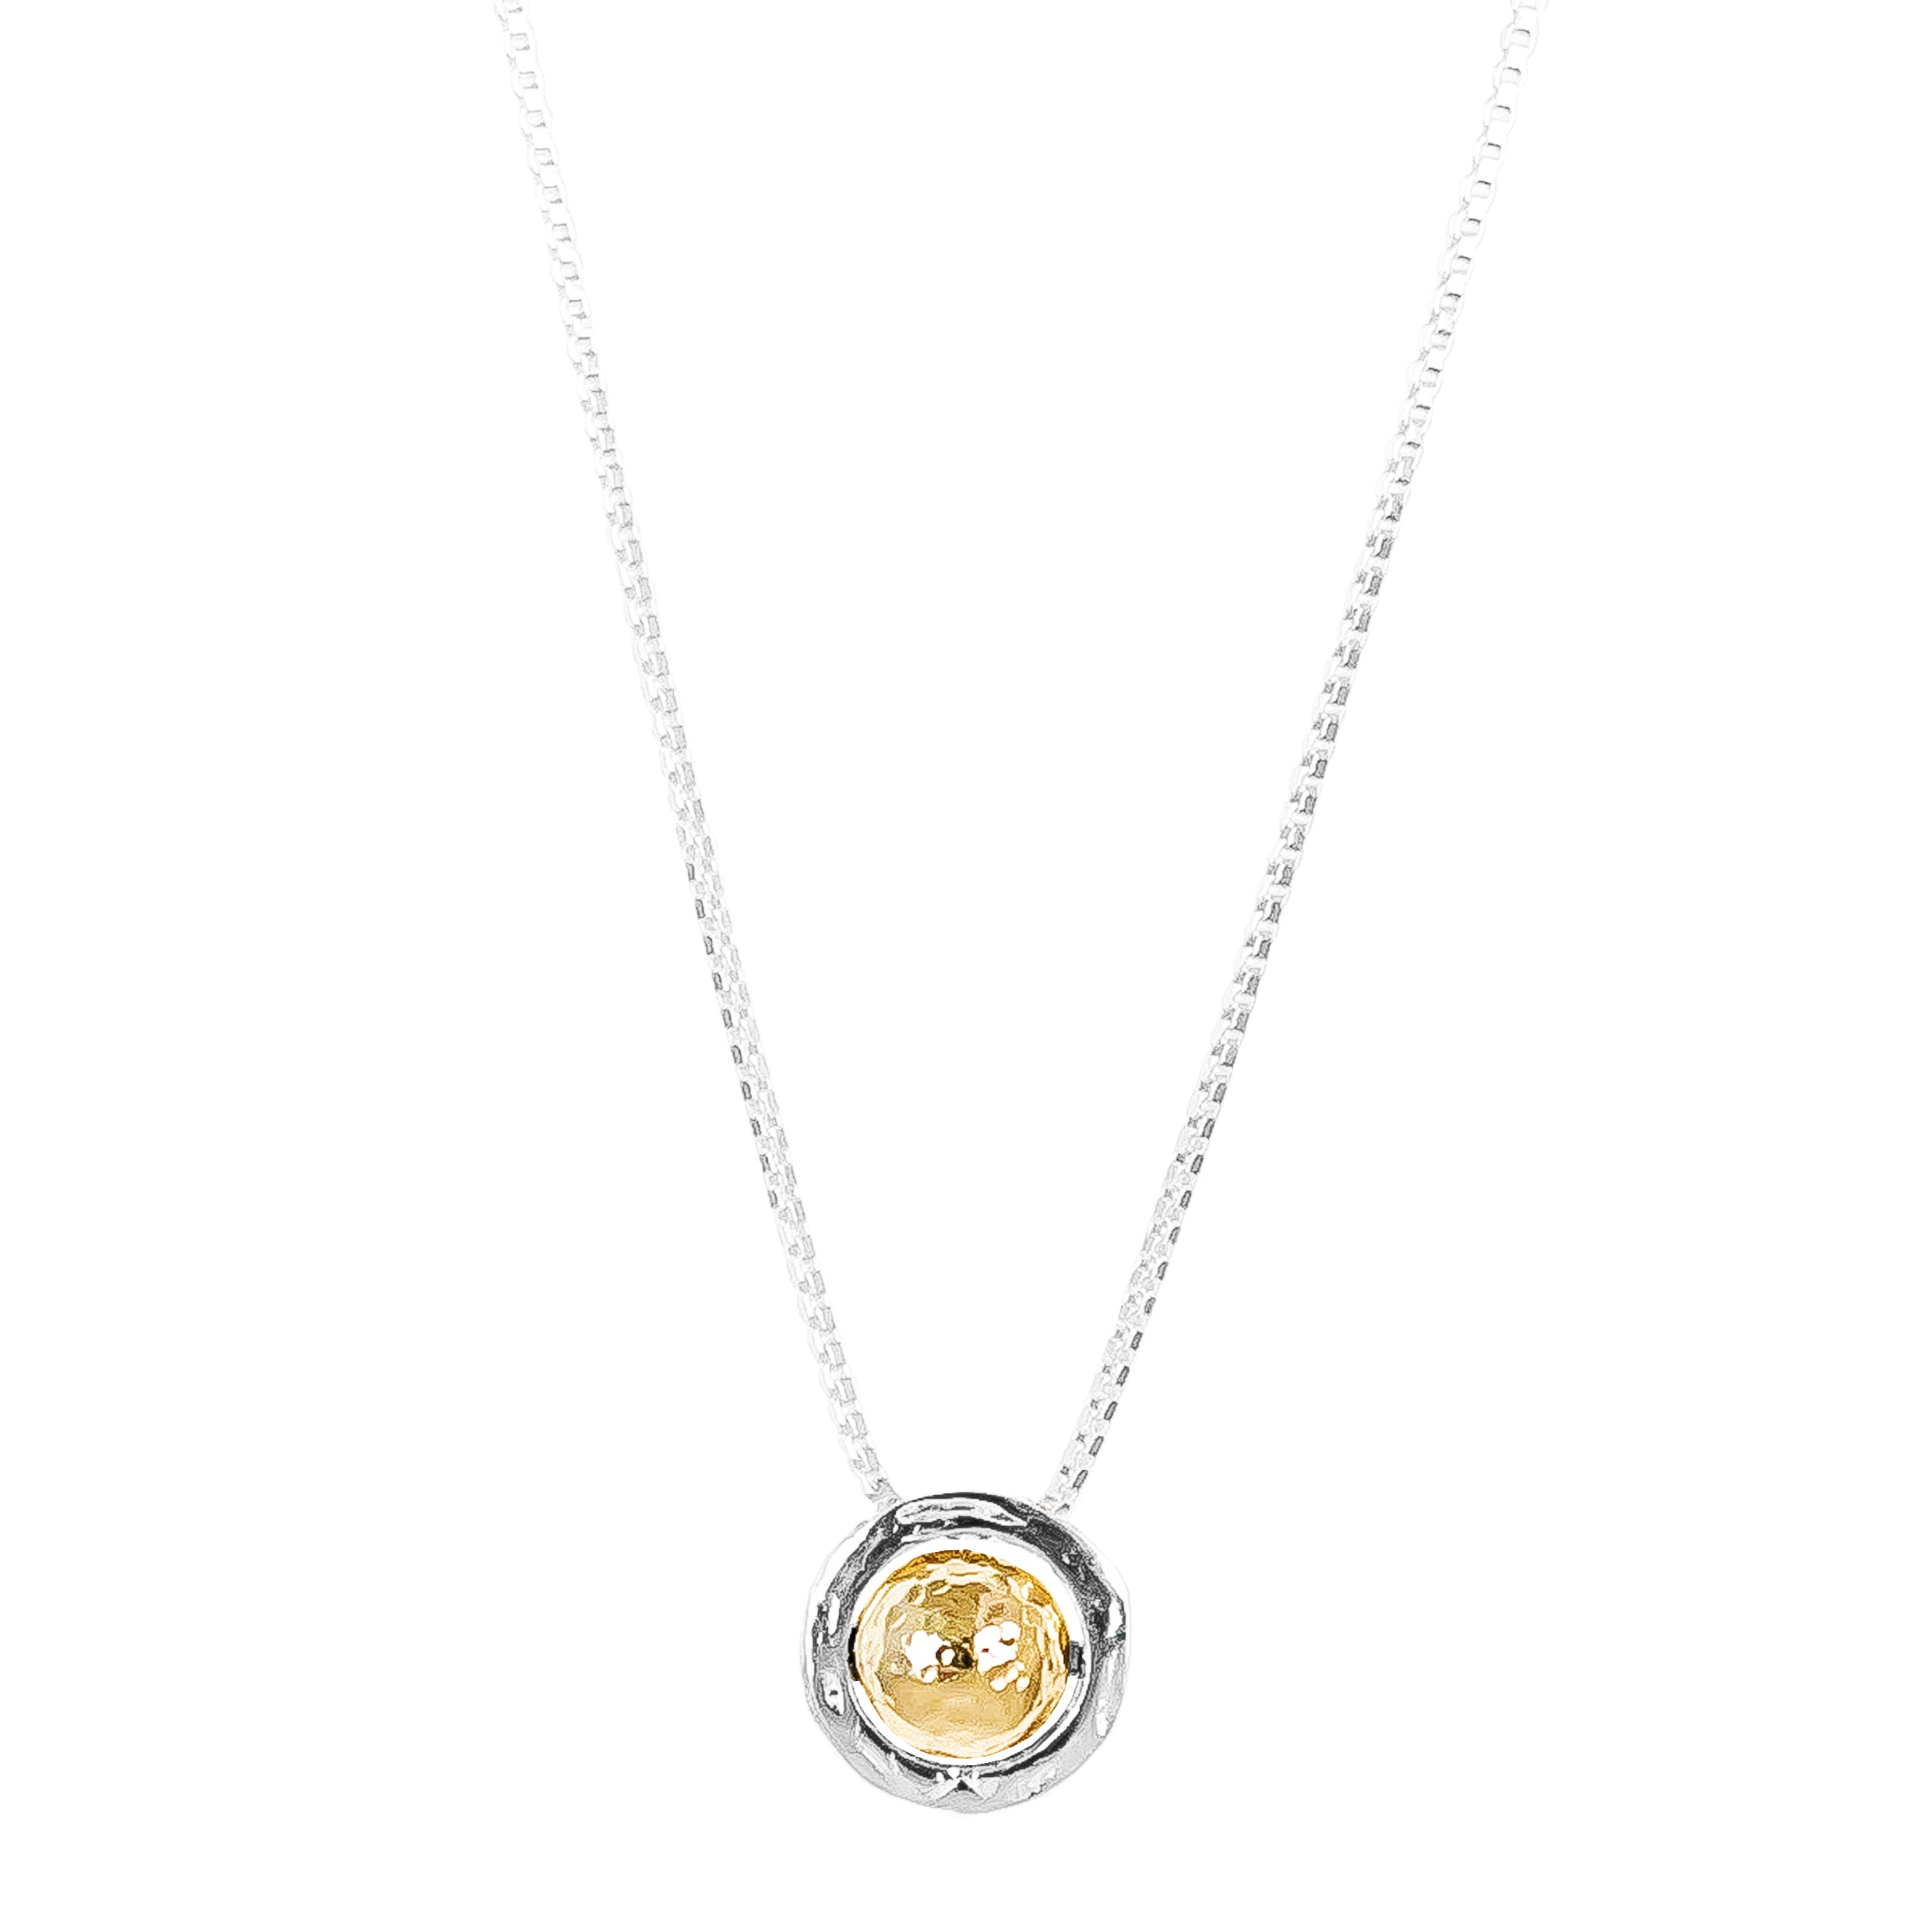 Atticus Large Charm Necklace With Box Chain - Long | Hammered Gold Detail